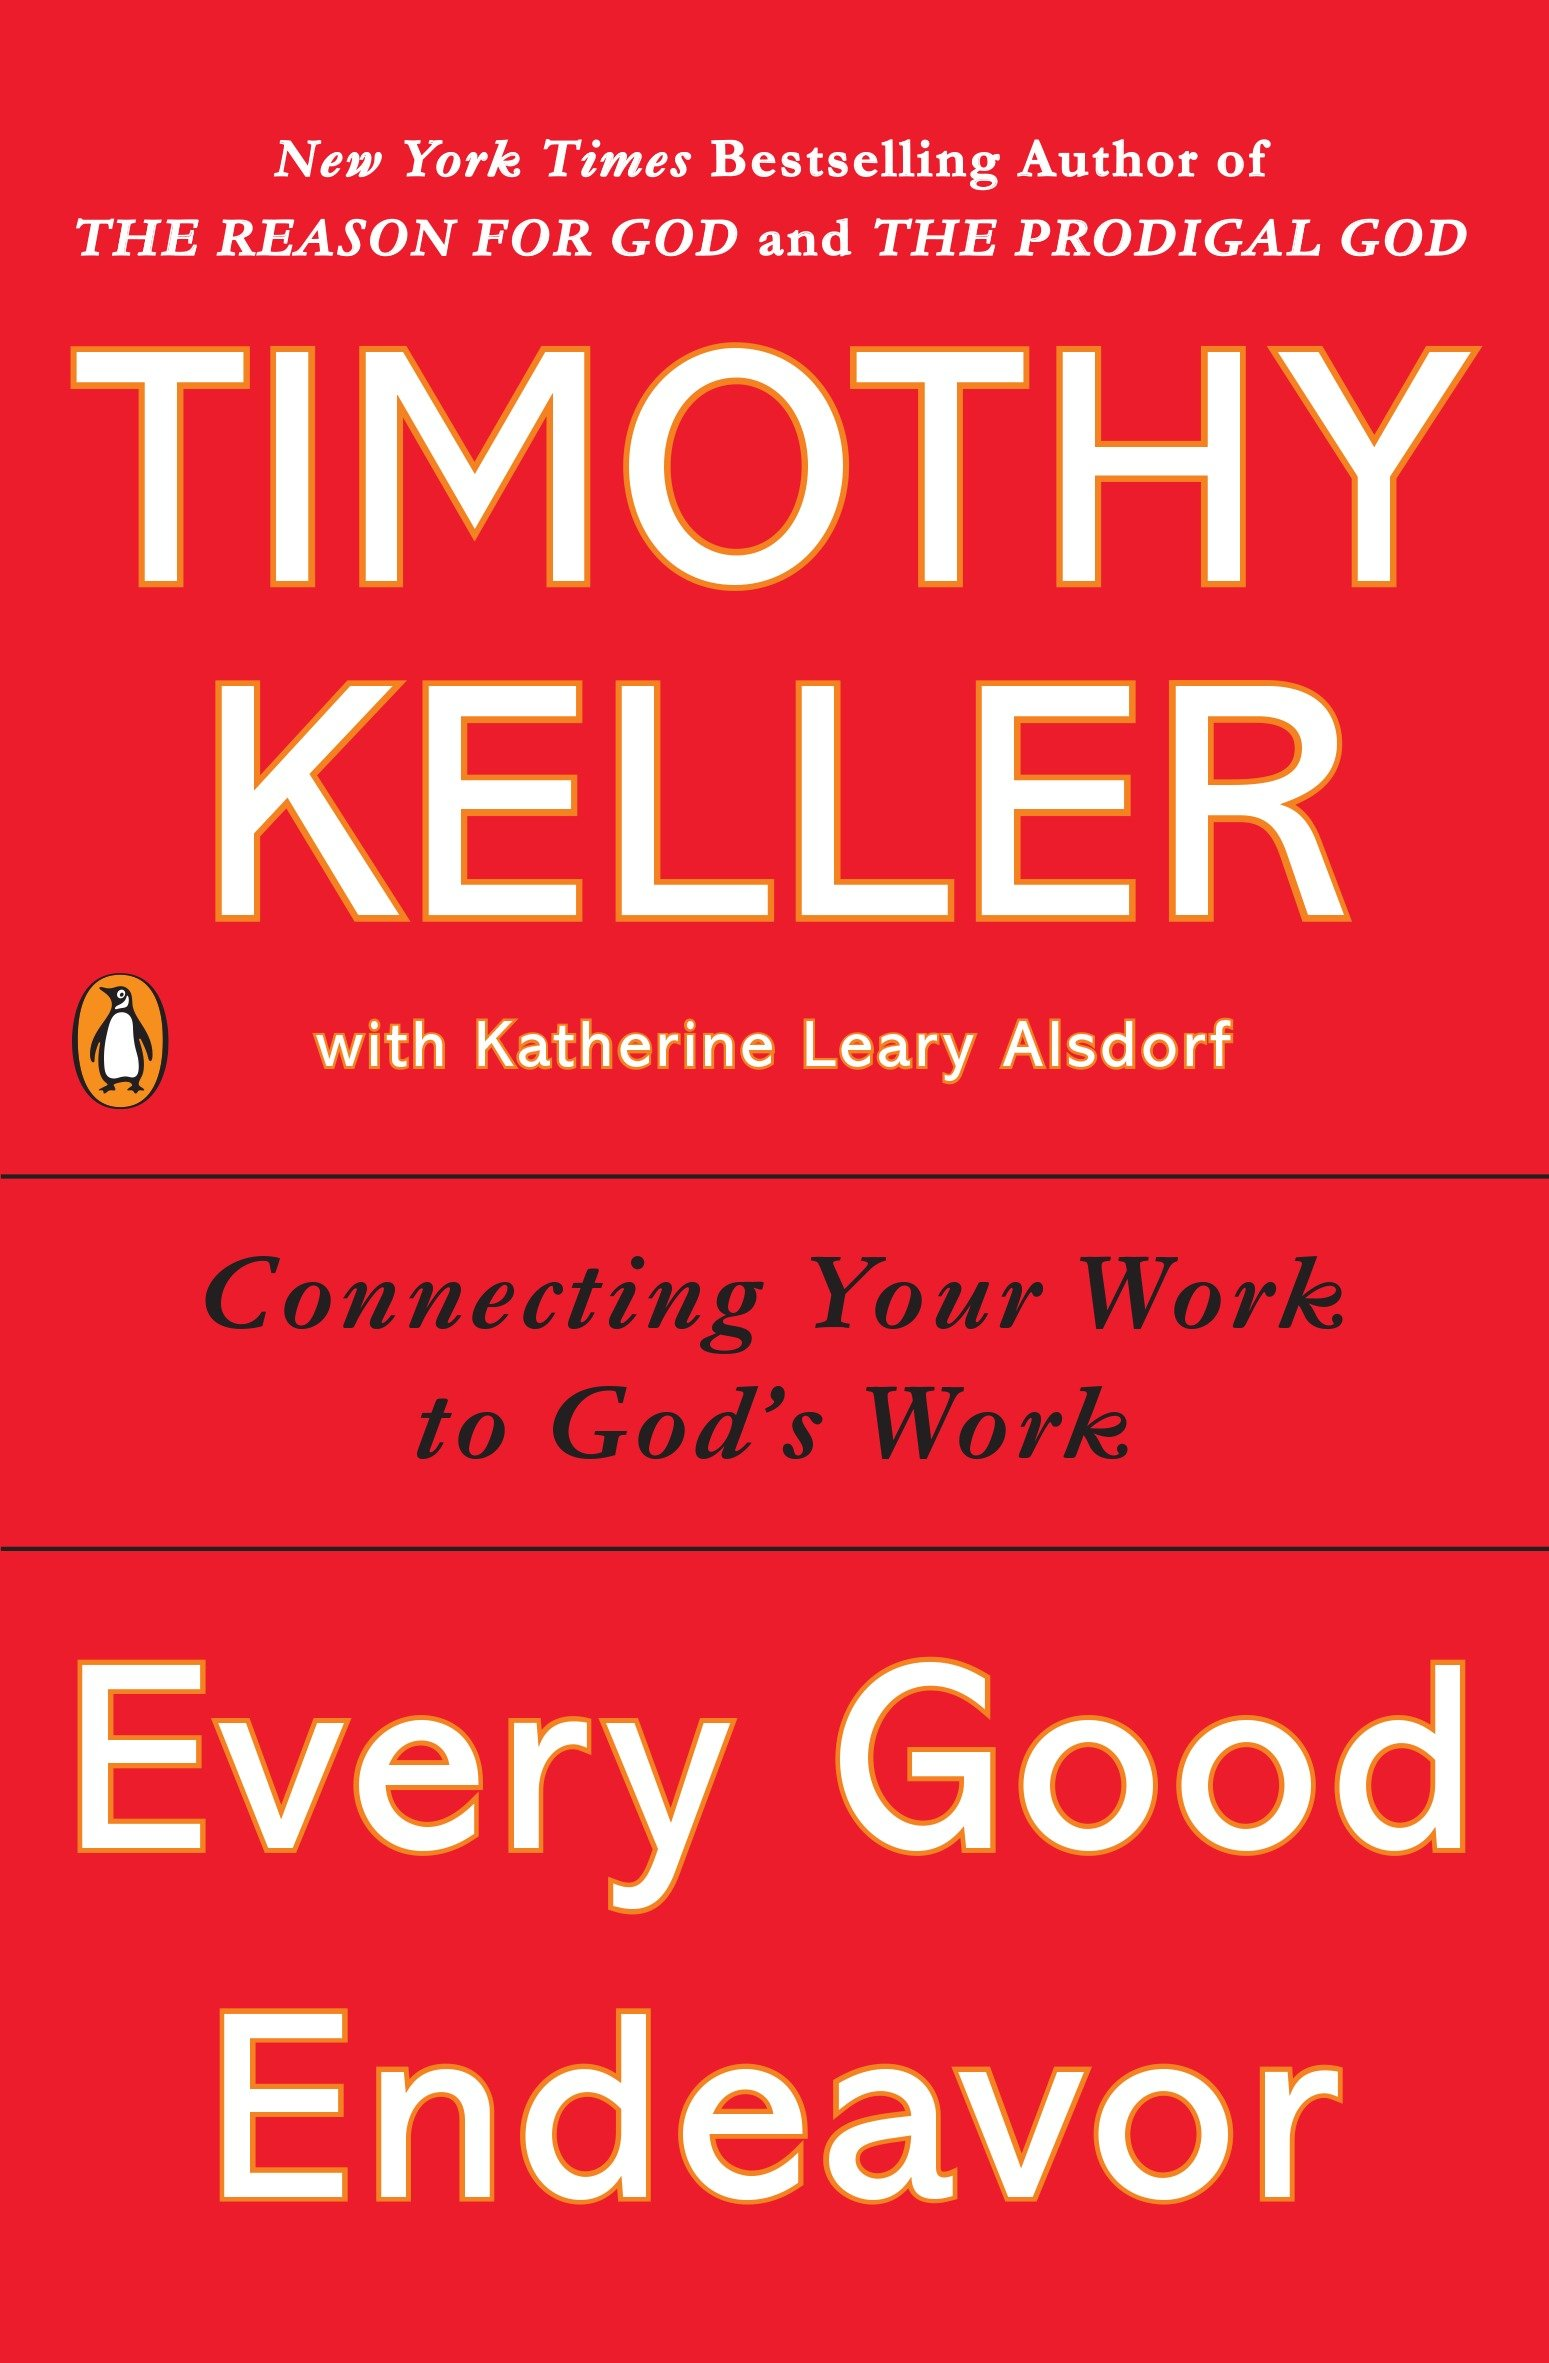 Every Good Endeavor: Connecting Your Work to Gods Work